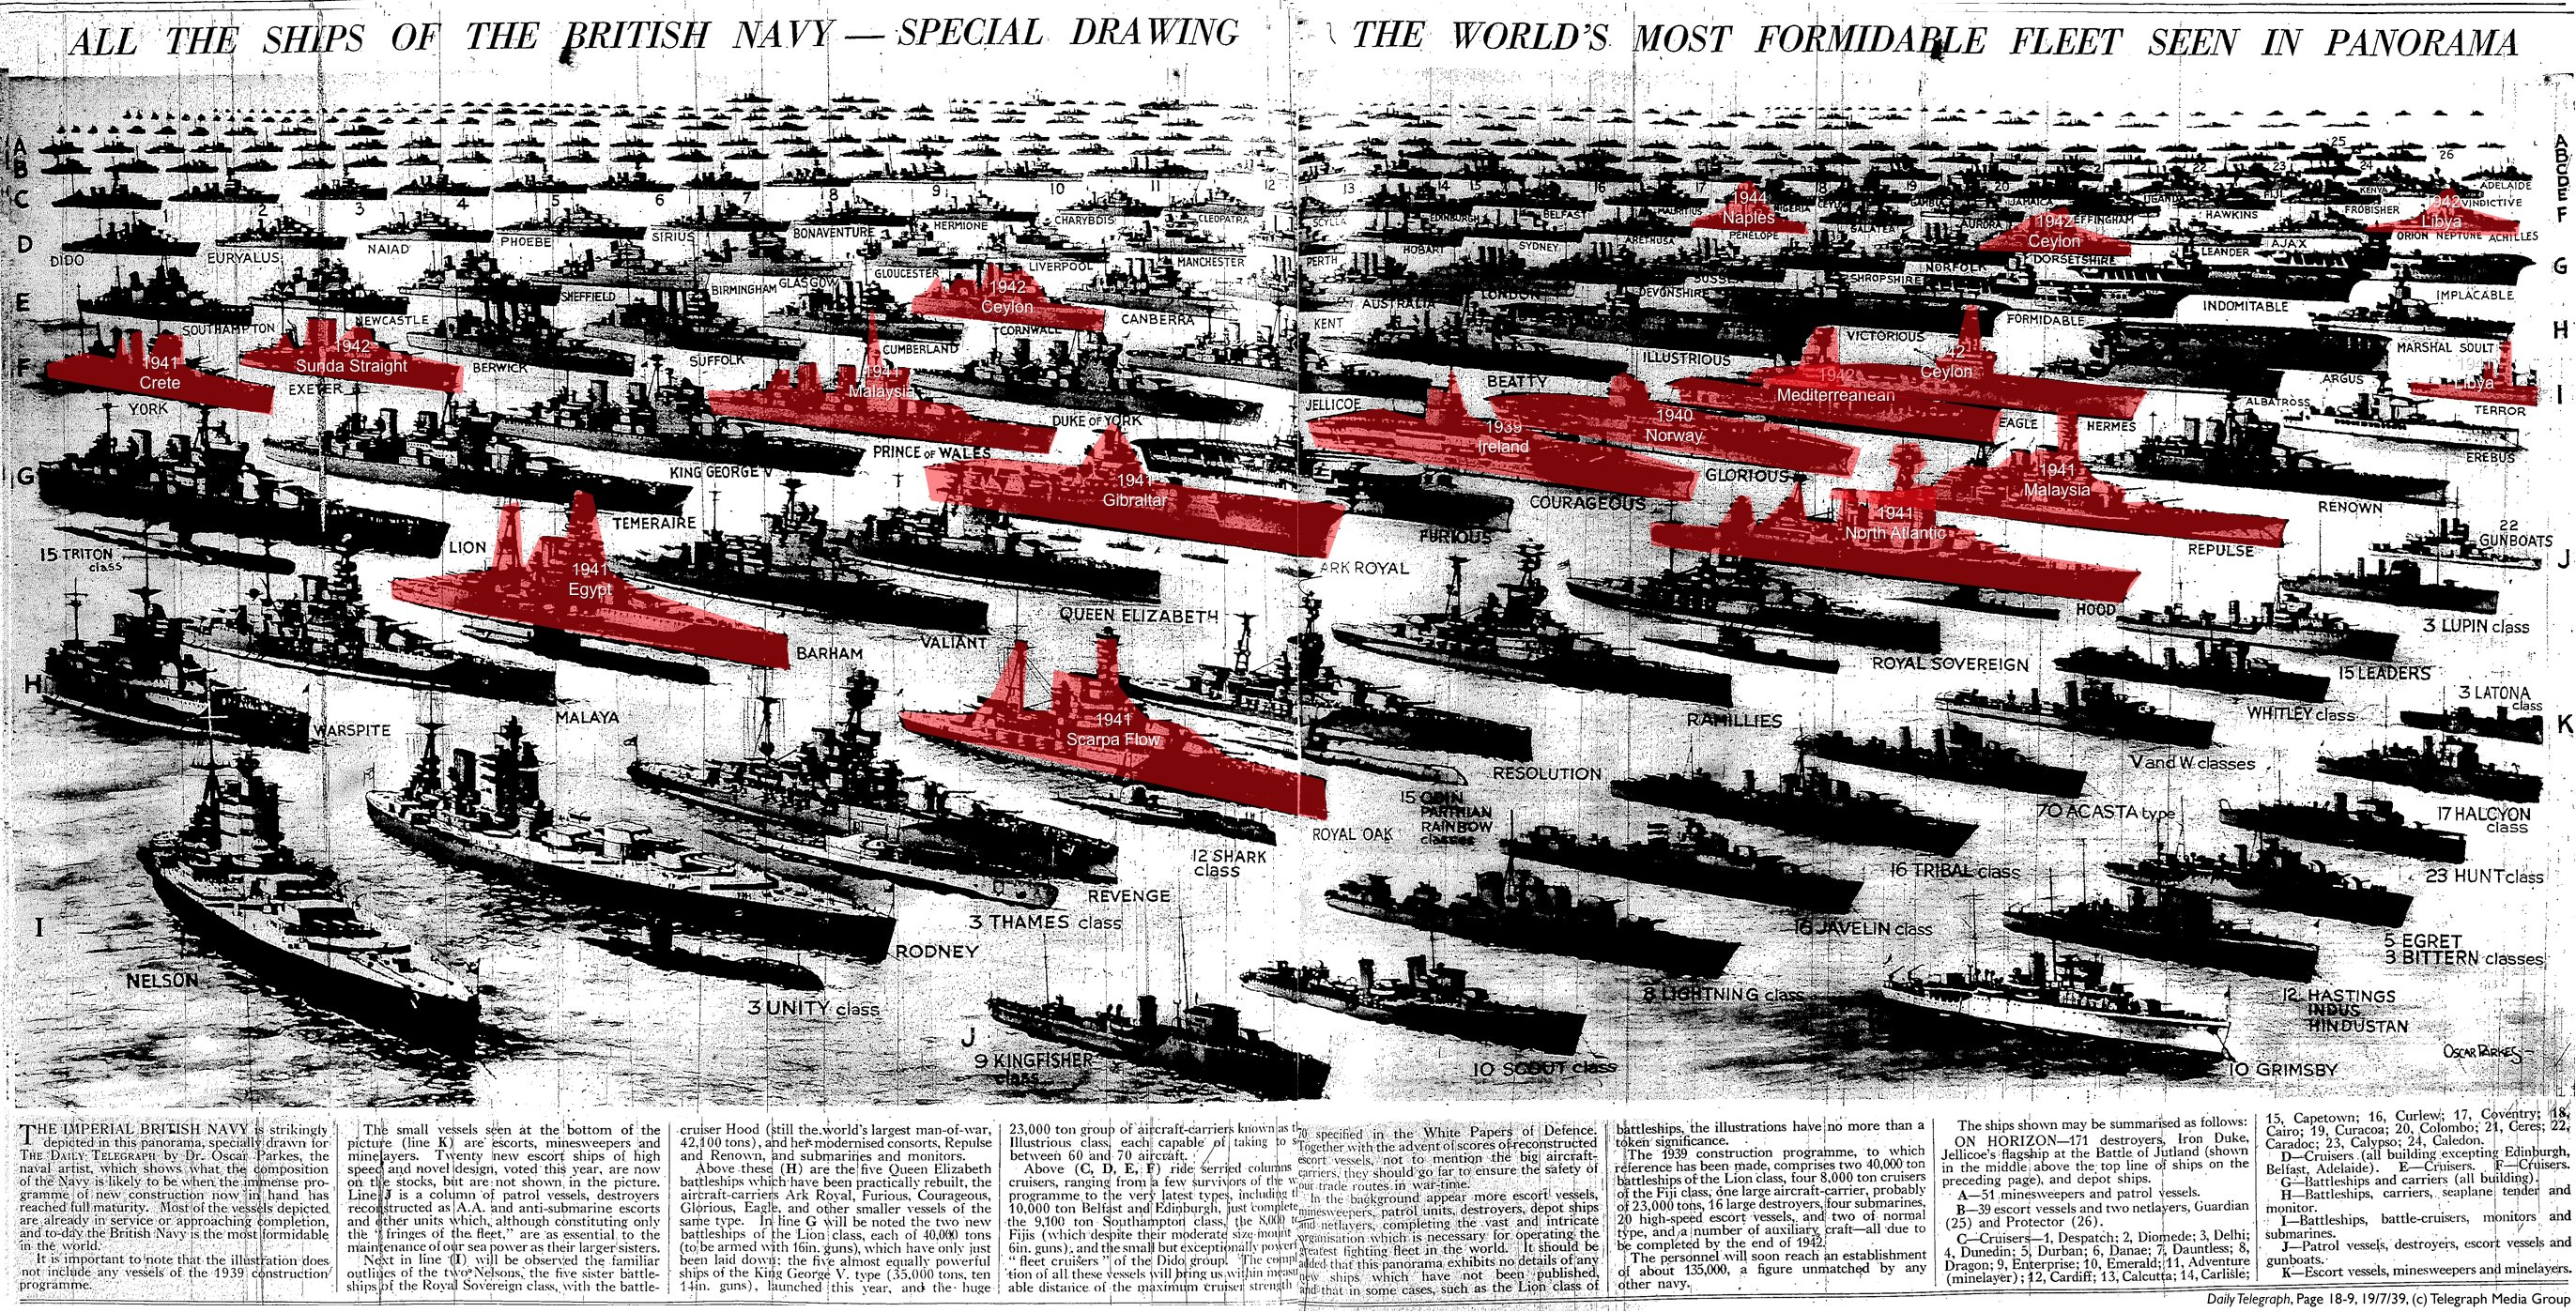 wwii-royal-navy-list-ships-sunk.jpg